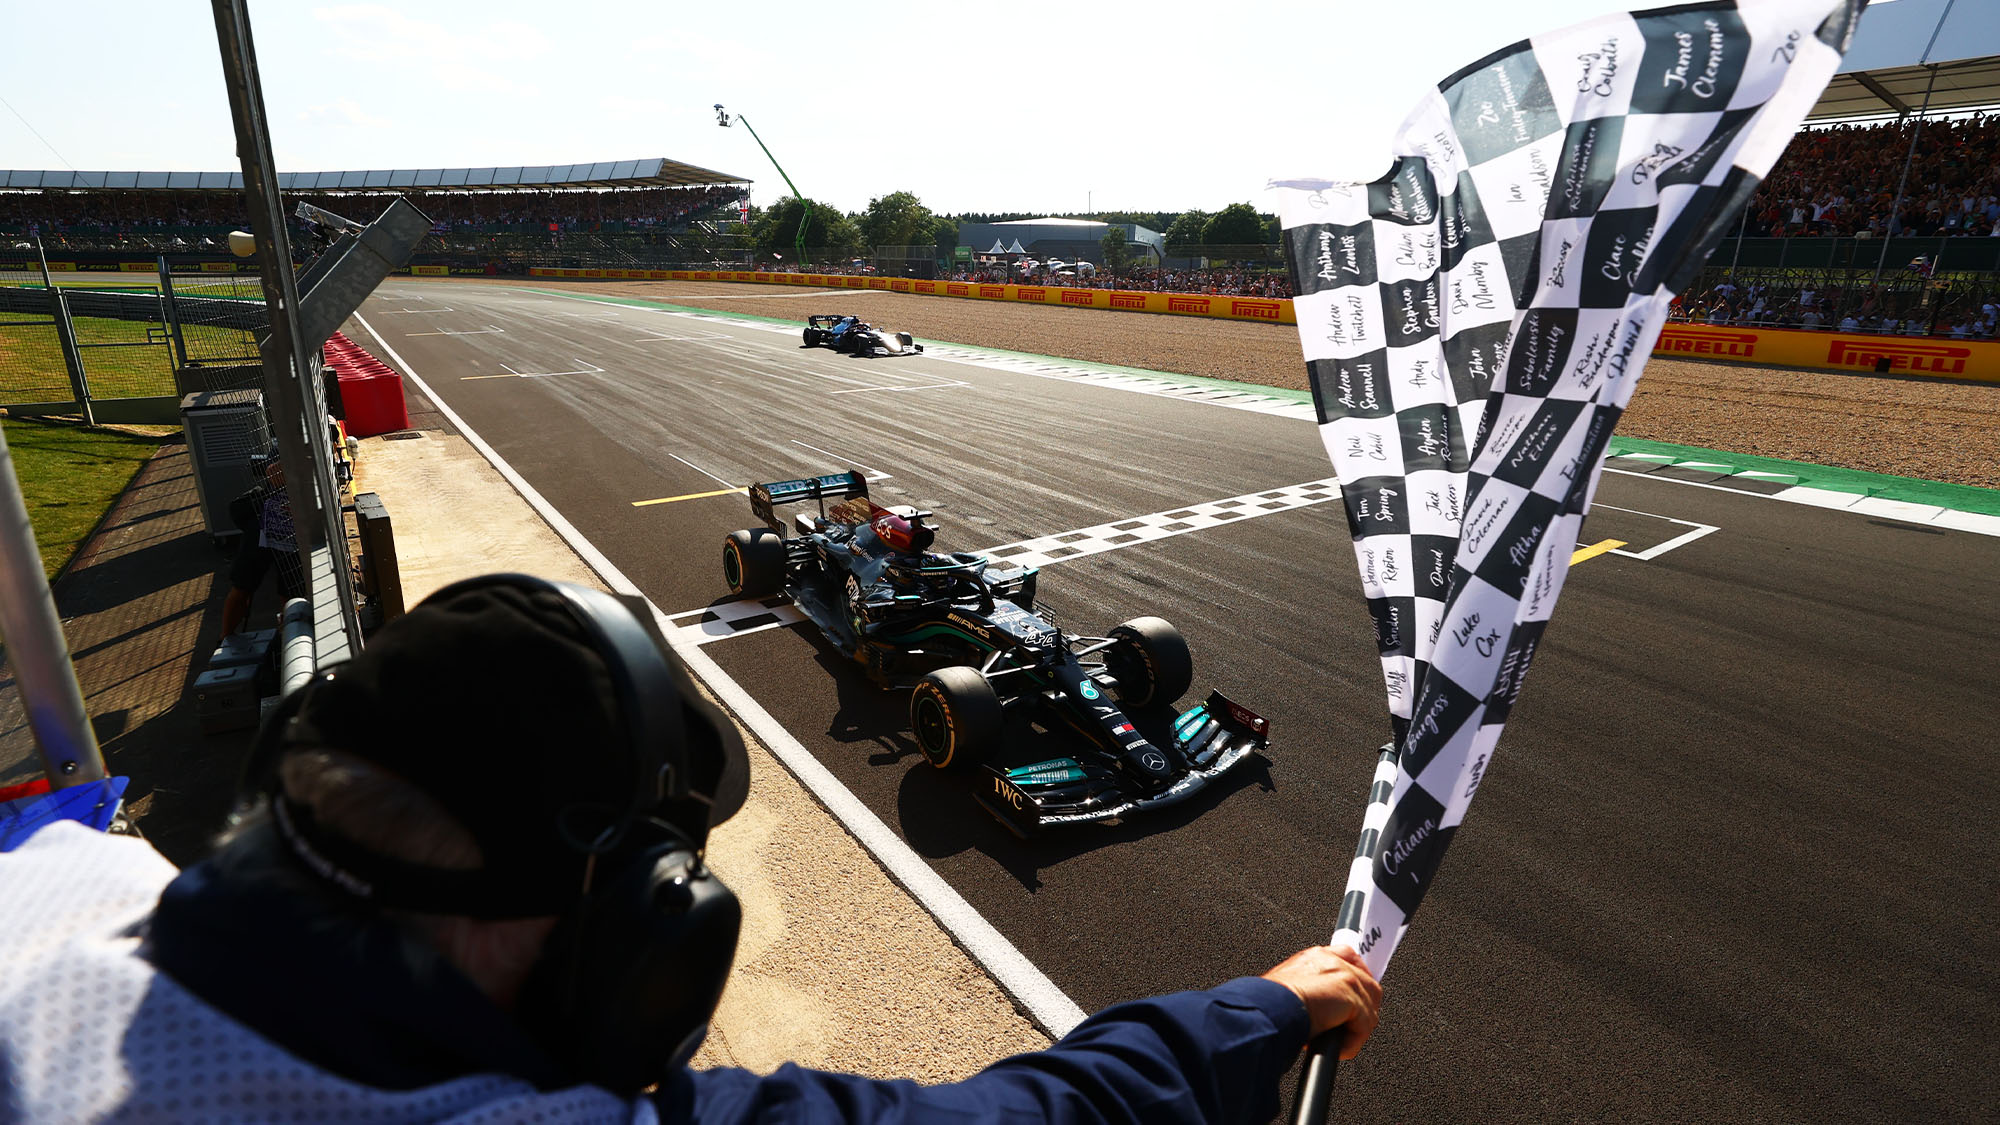 NORTHAMPTON, ENGLAND - JULY 18: Race winner Lewis Hamilton of Great Britain driving the (44) Mercedes AMG Petronas F1 Team Mercedes W12 takes the chequered flag during the F1 Grand Prix of Great Britain at Silverstone on July 18, 2021 in Northampton, England. (Photo by Dan Istitene - Formula 1/Formula 1 via Getty Images)